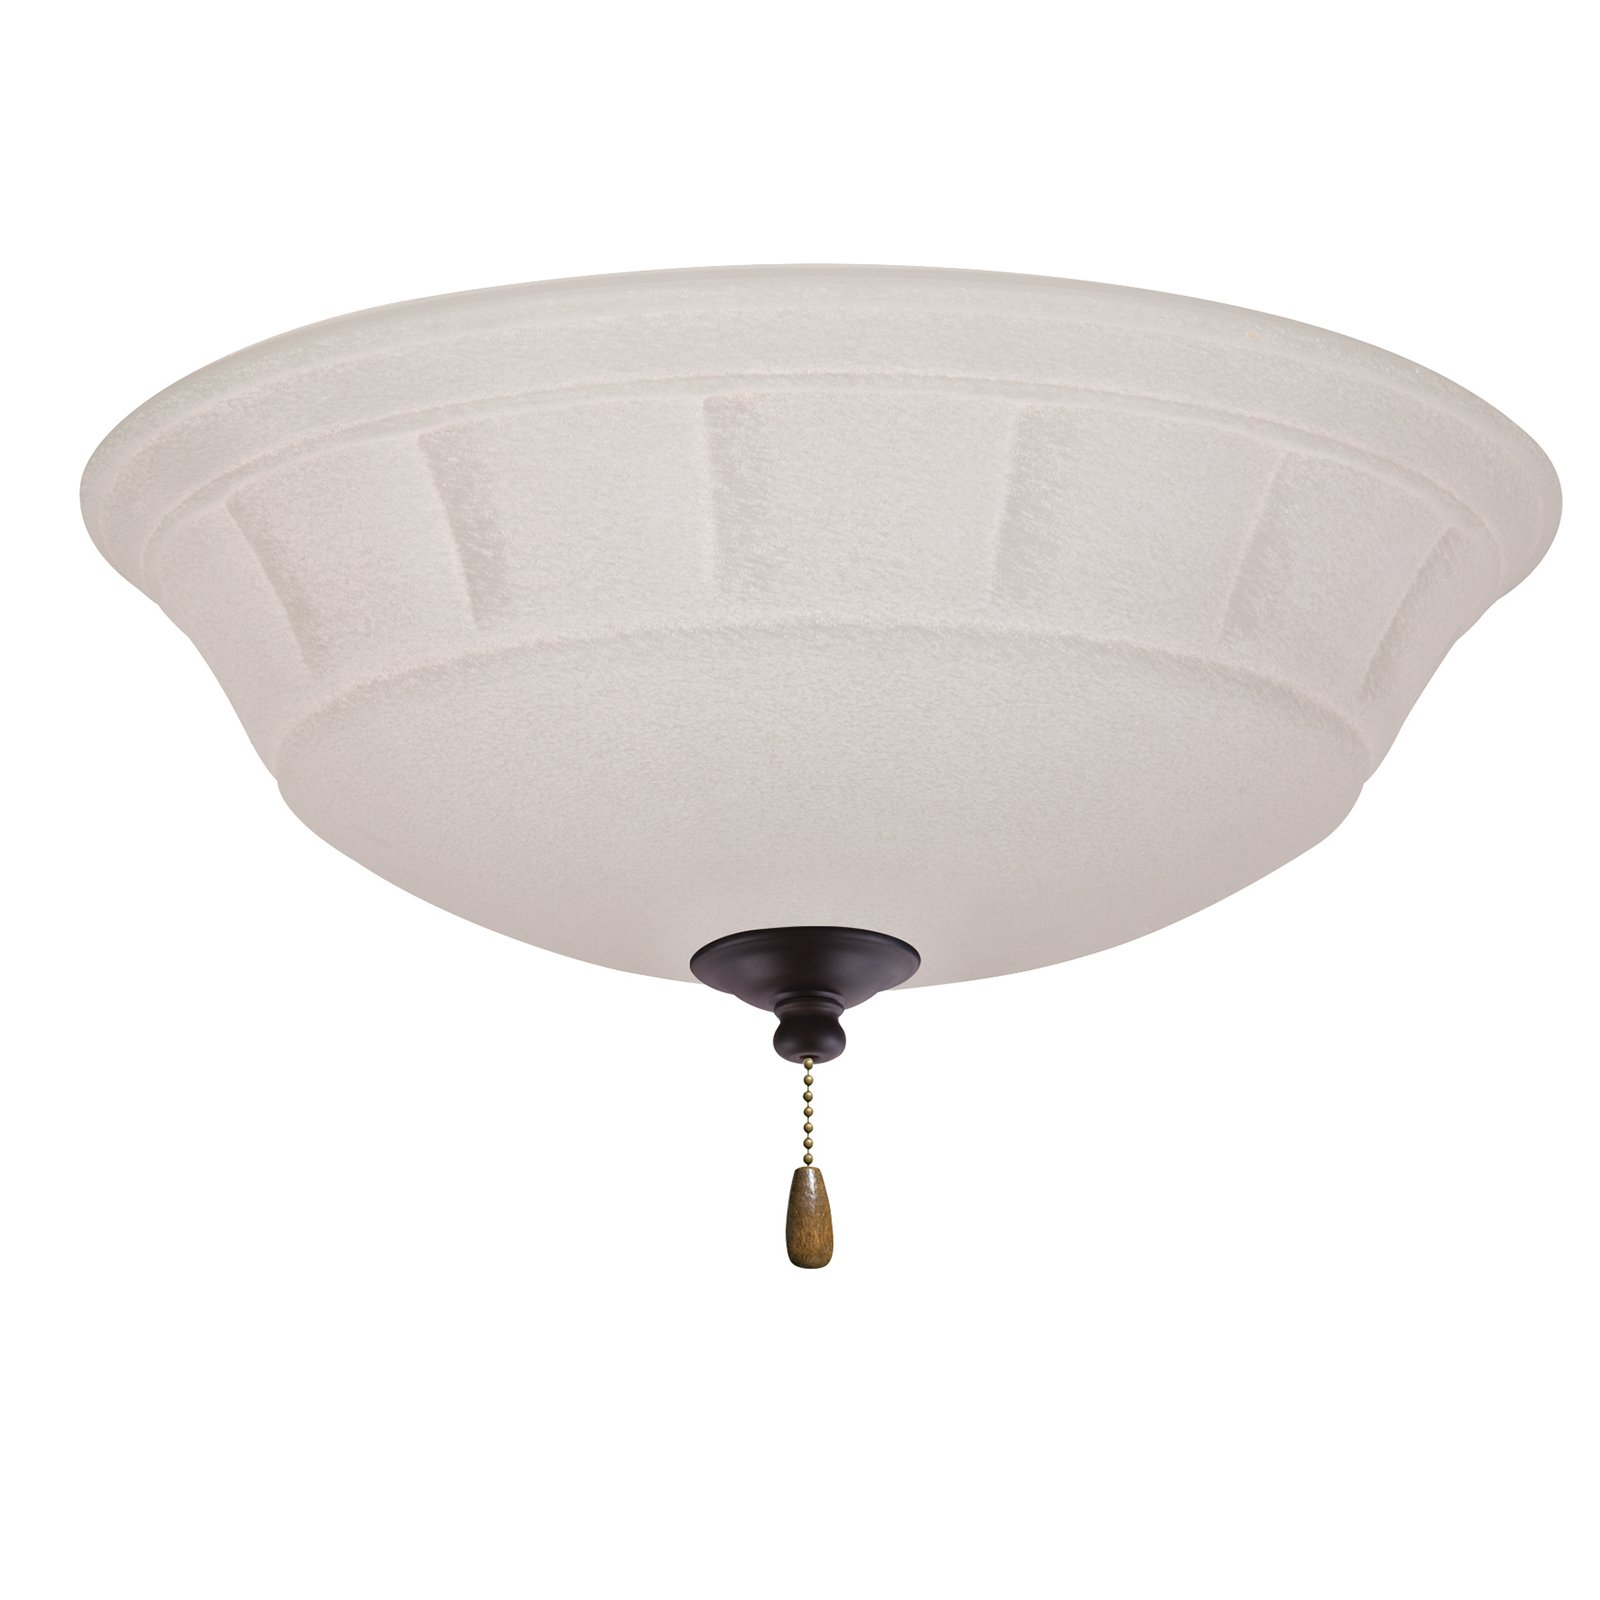 interiors fan fans ceiling remote using residential decor blade and interior for fun kit design light home emerson with